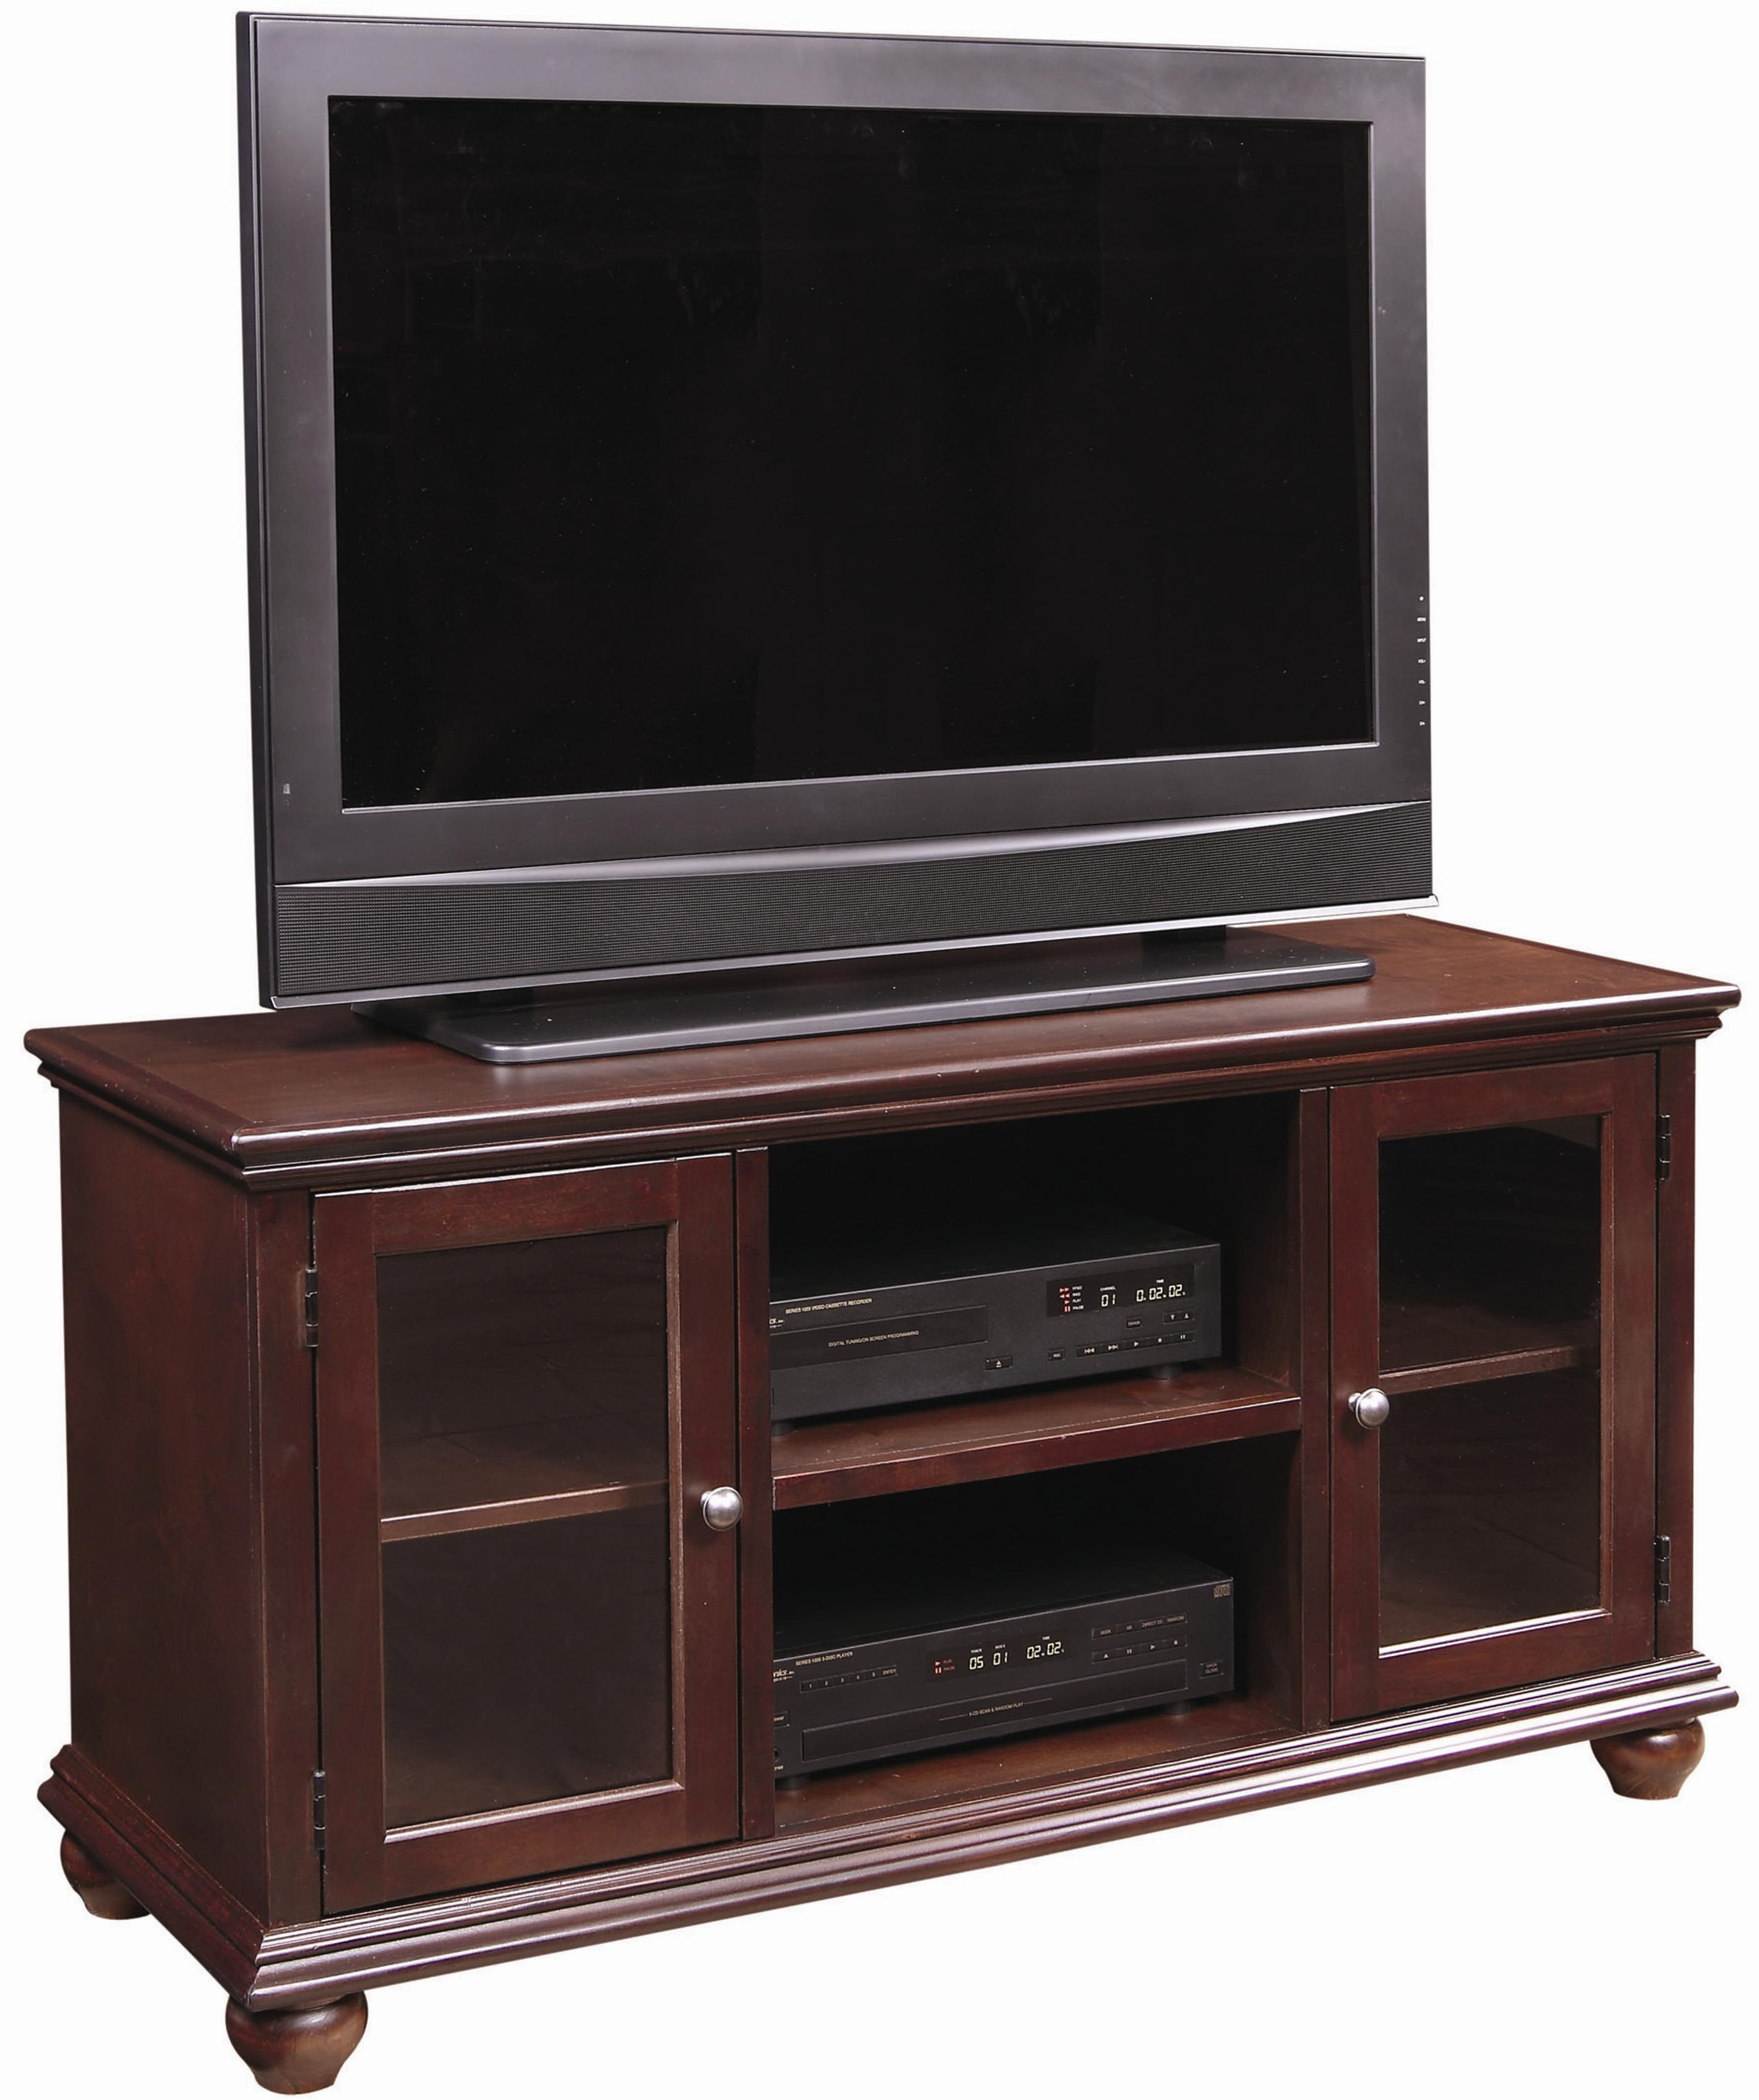 aspenhome casual traditional 51 inch television console. Black Bedroom Furniture Sets. Home Design Ideas